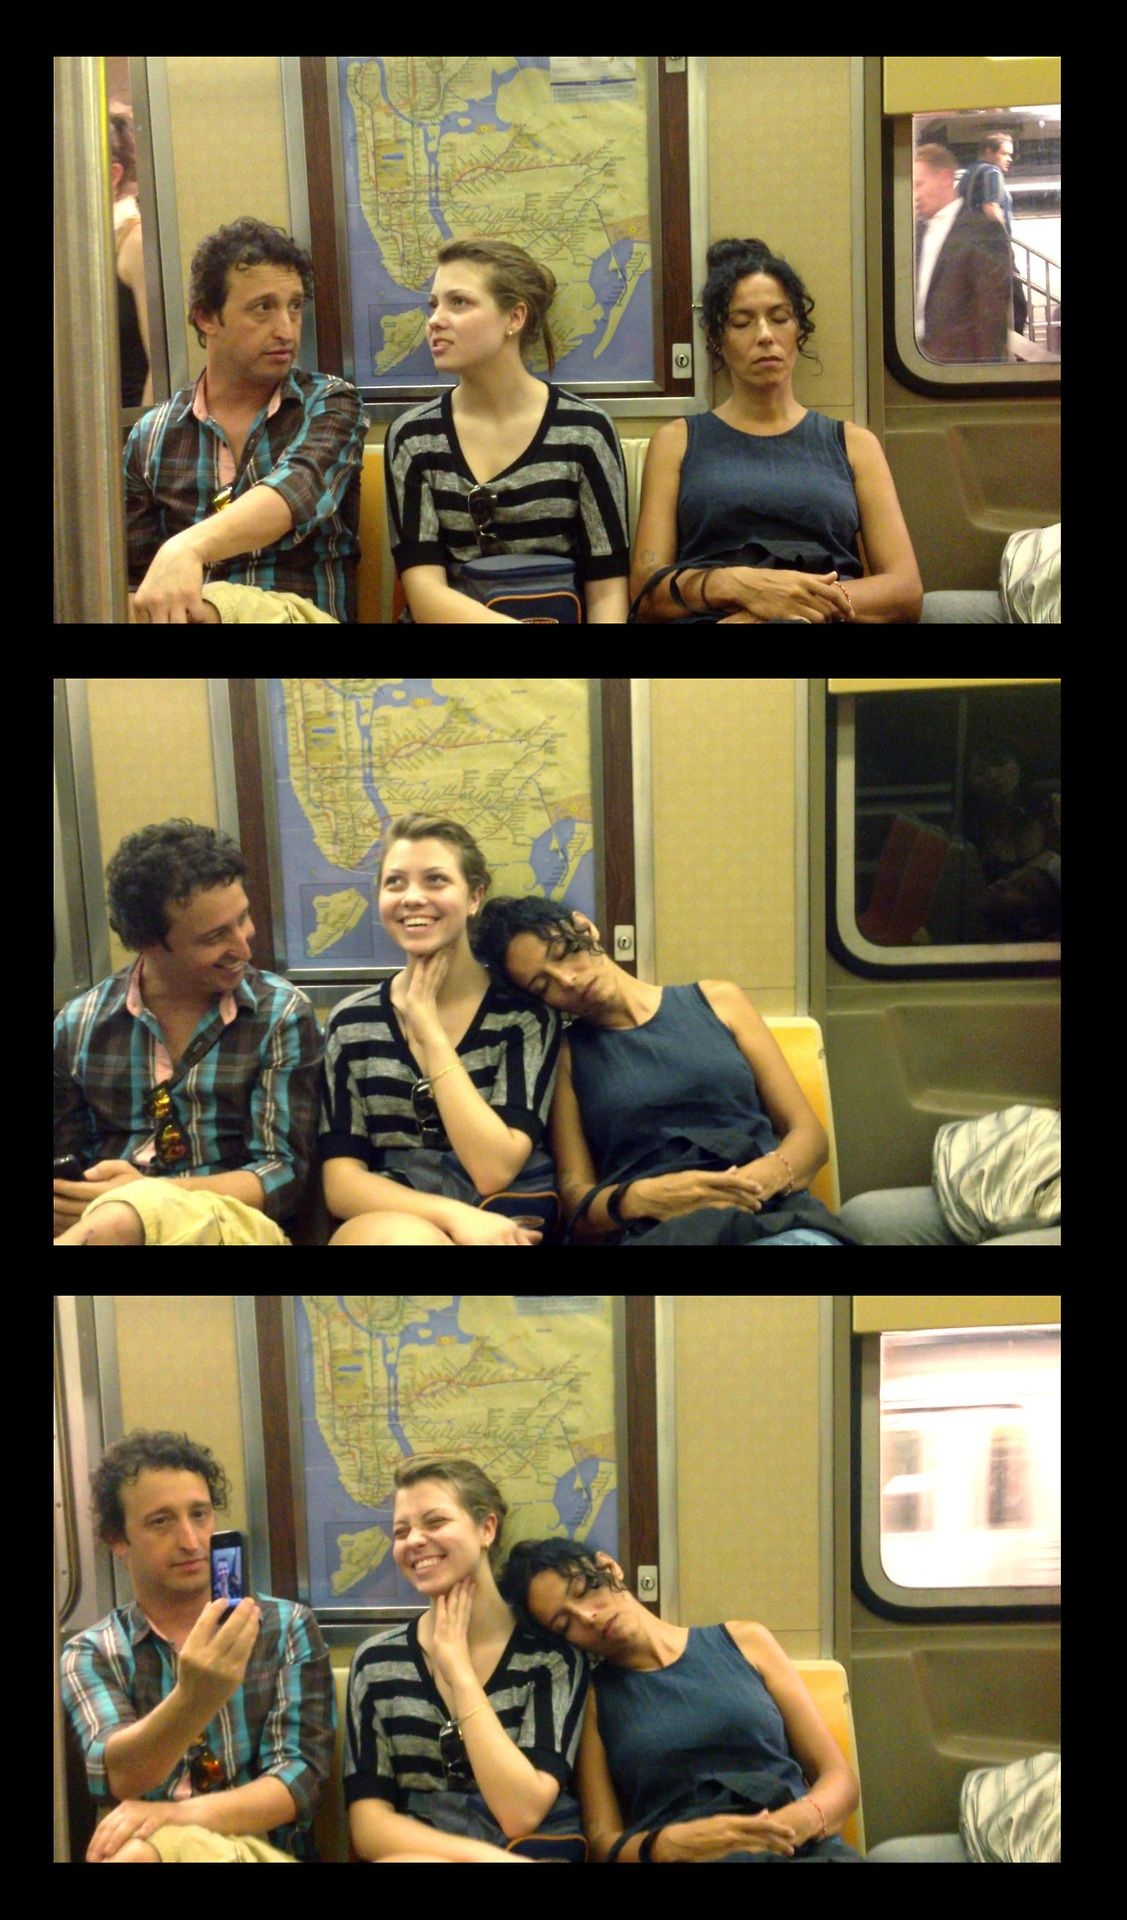 Woman Falls Asleep On Strangers On The Subway Interesting Reactions How To Fall Asleep Nyc Subway Funny Video Clips